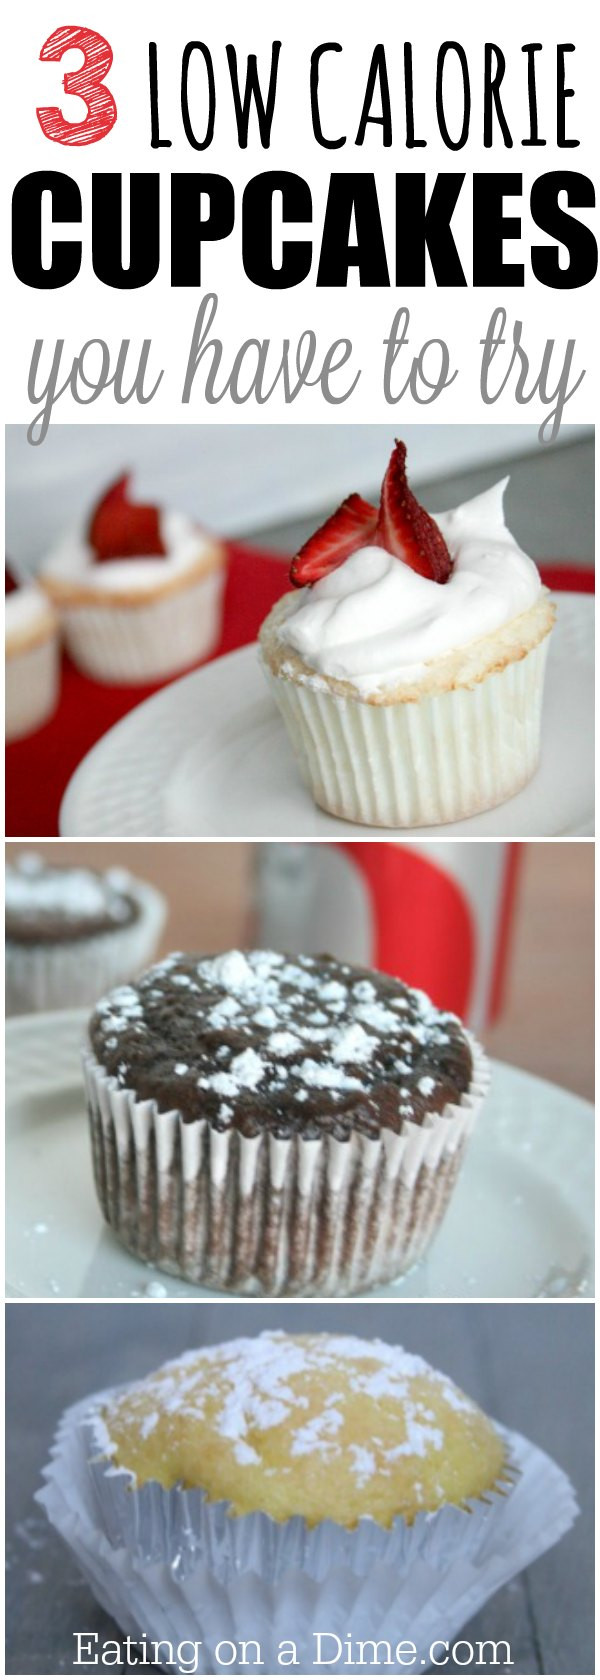 Low Calorie Cupcakes Recipes  3 Low Calorie cupcakes You have to try Eating on a Dime